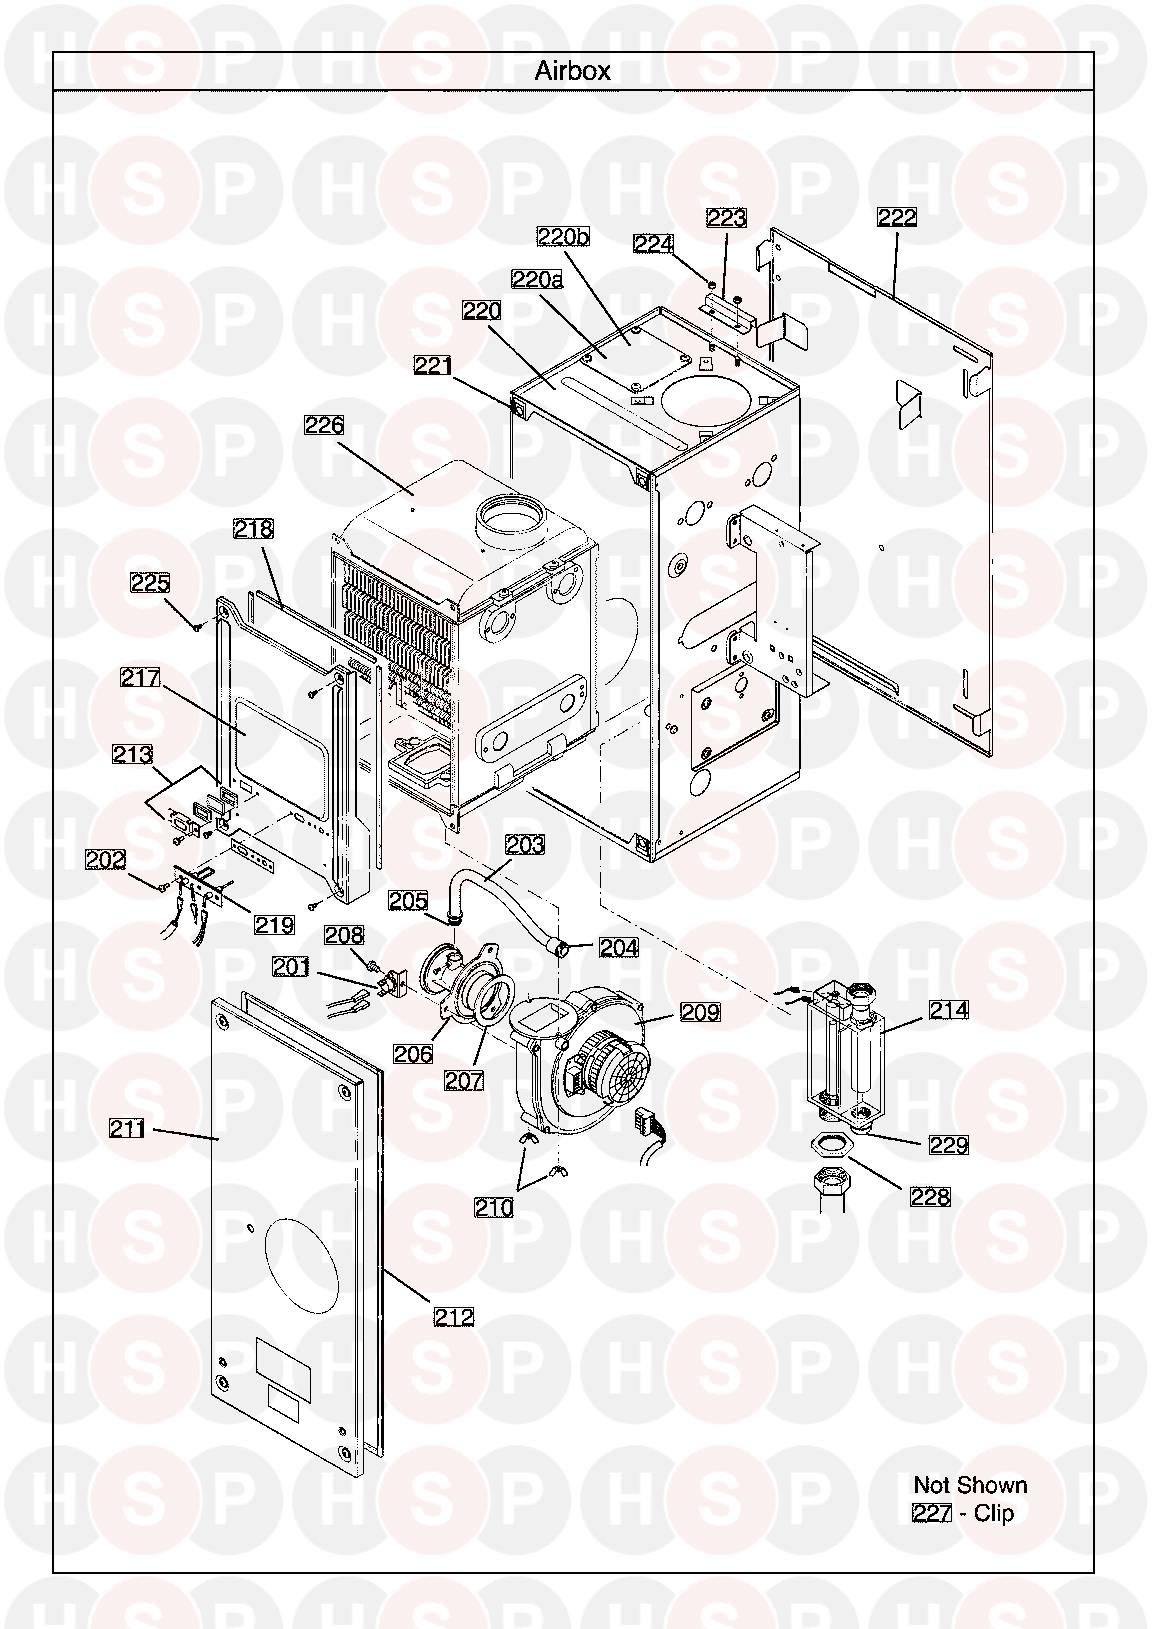 AIR BOX diagram for Potterton GOLD HEAT 15 Erp serial no. ending in BC